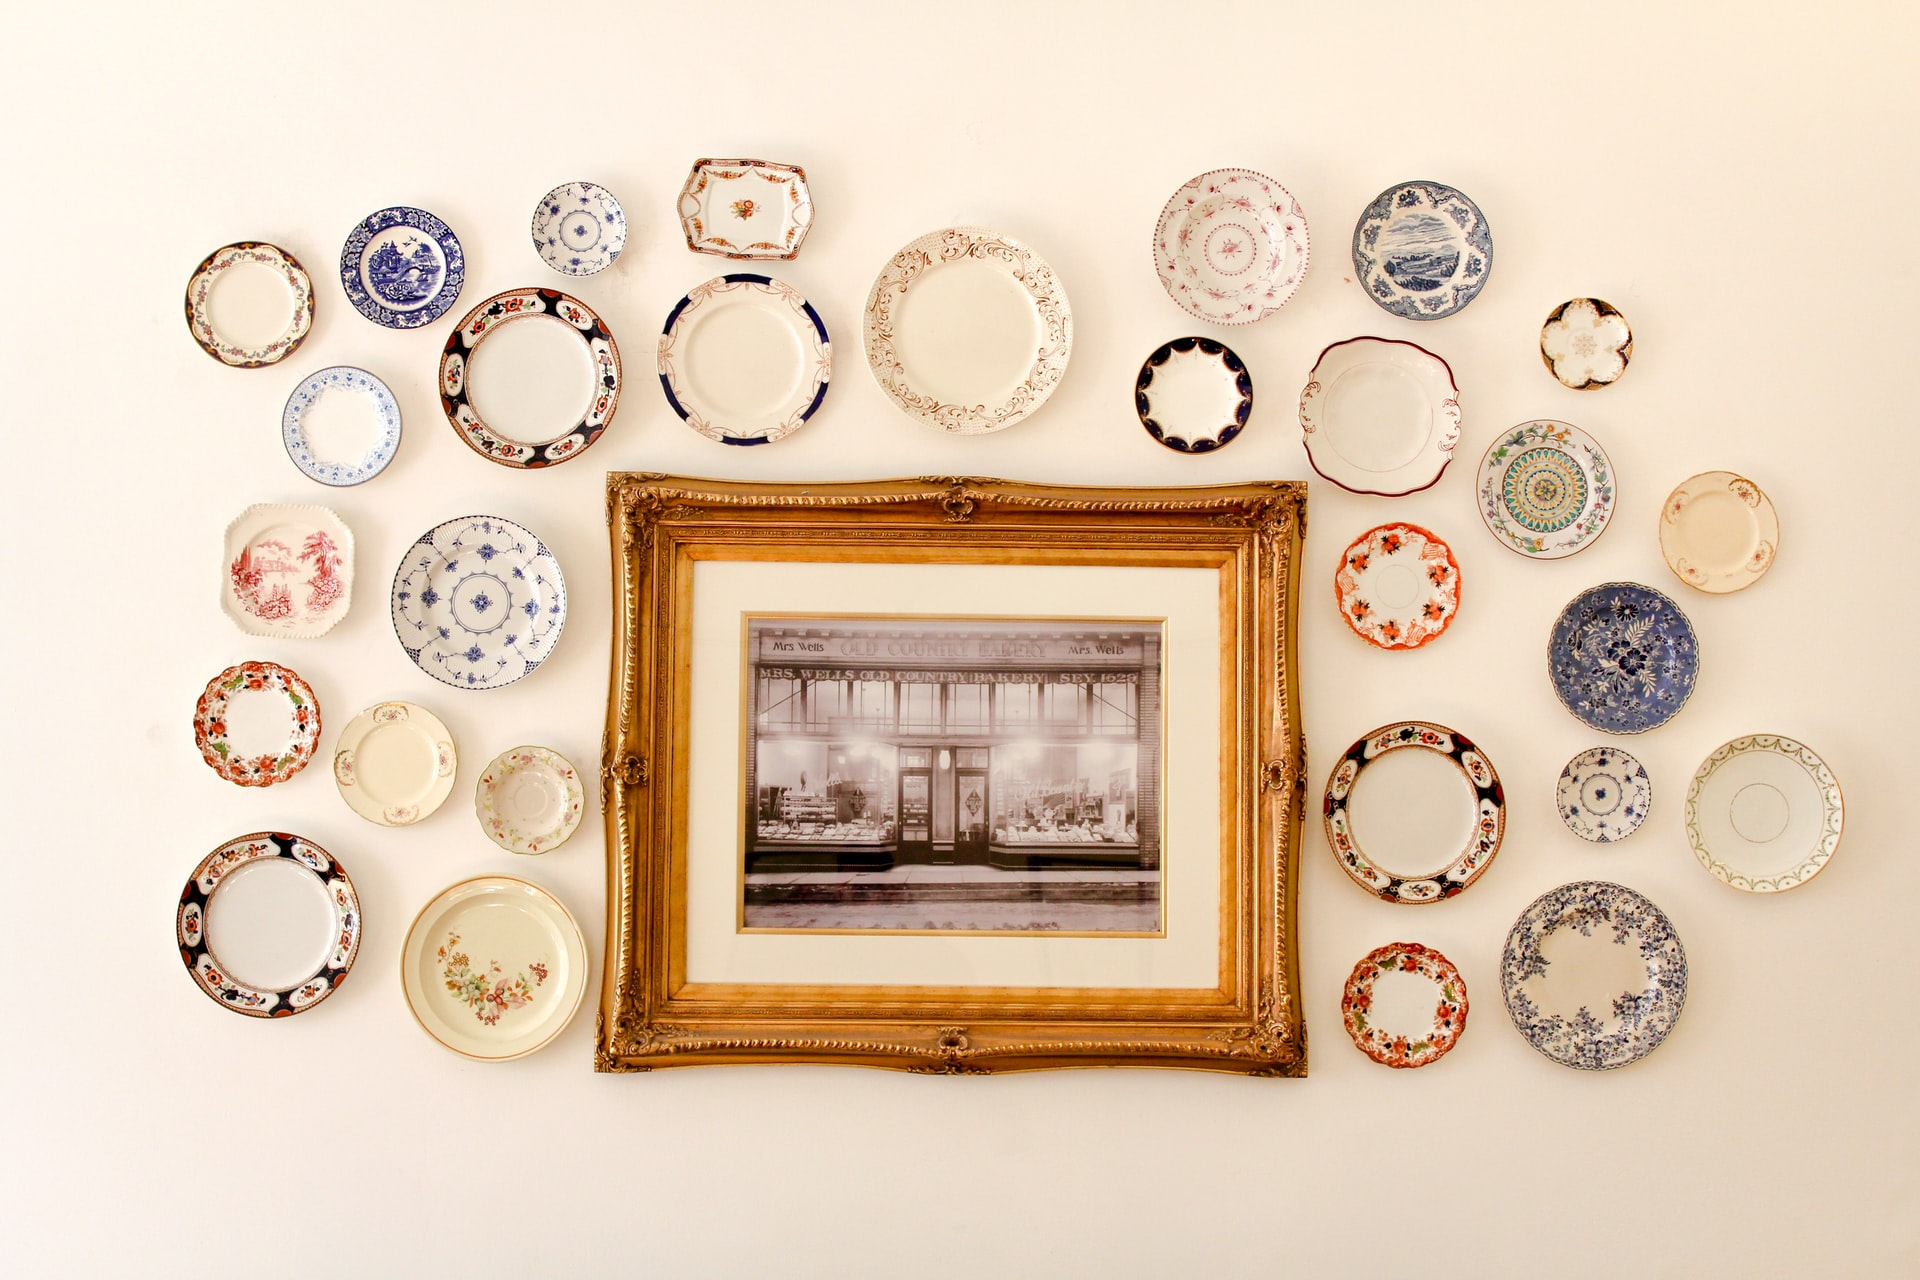 Plates used as wall decor